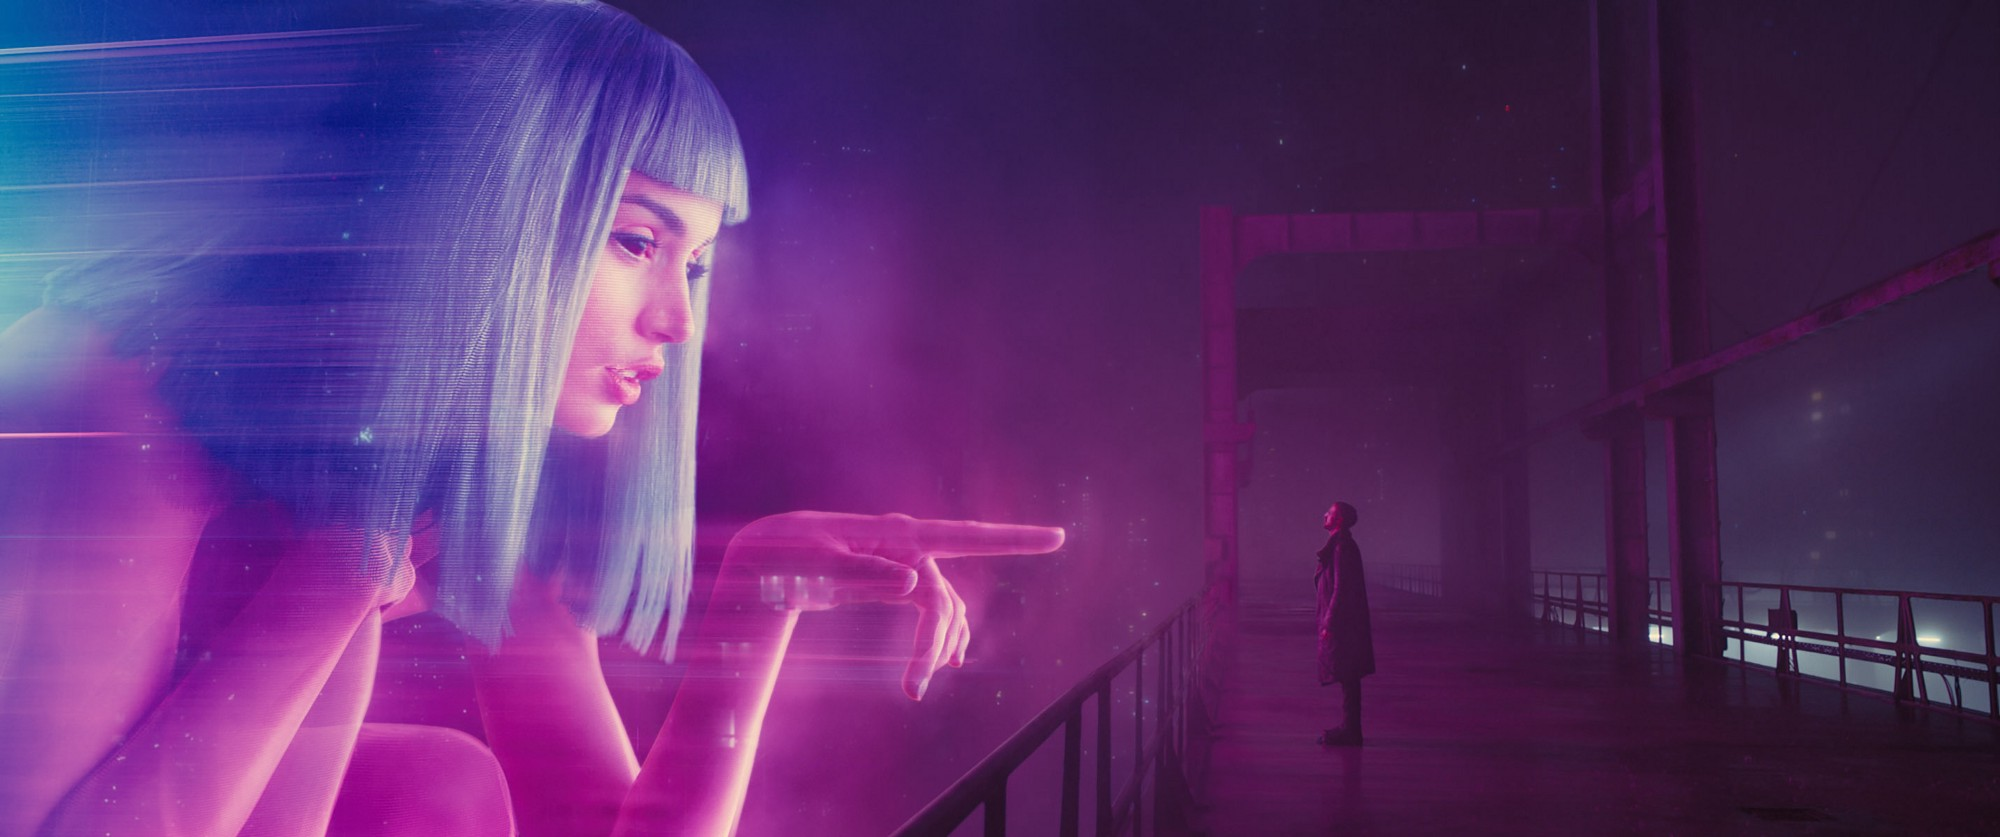 The Digital Soul of BLADE RUNNER 2049